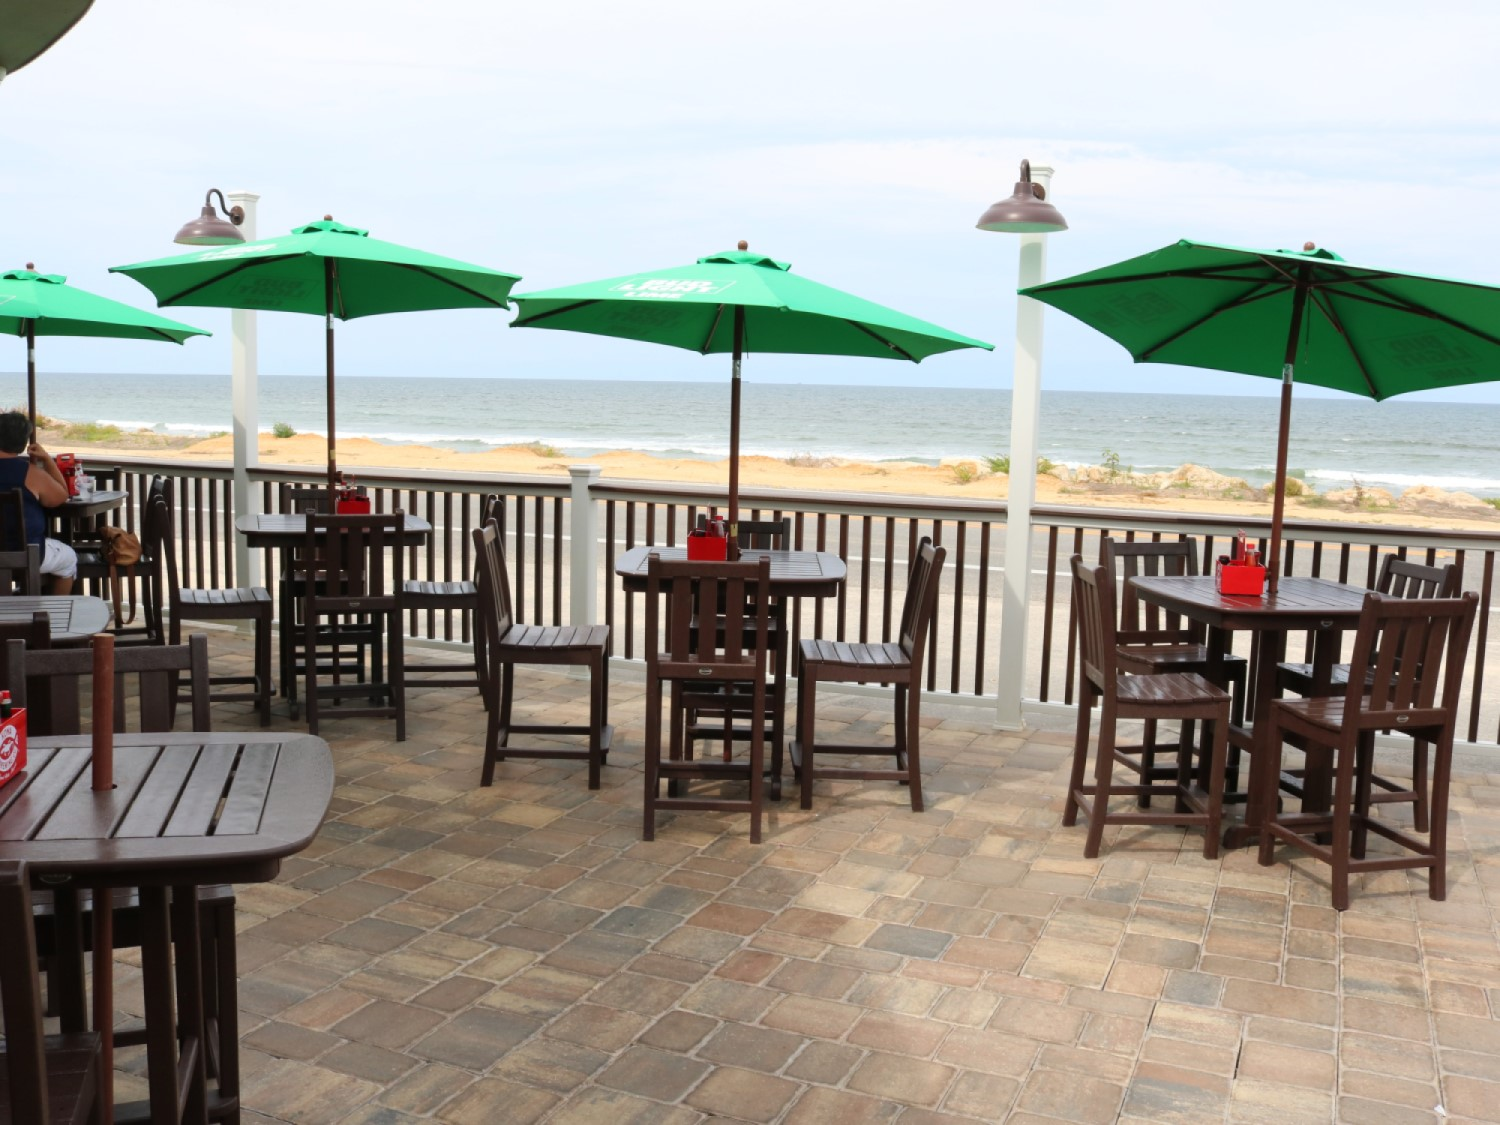 Oceanside Beach Bar and Grill Patio